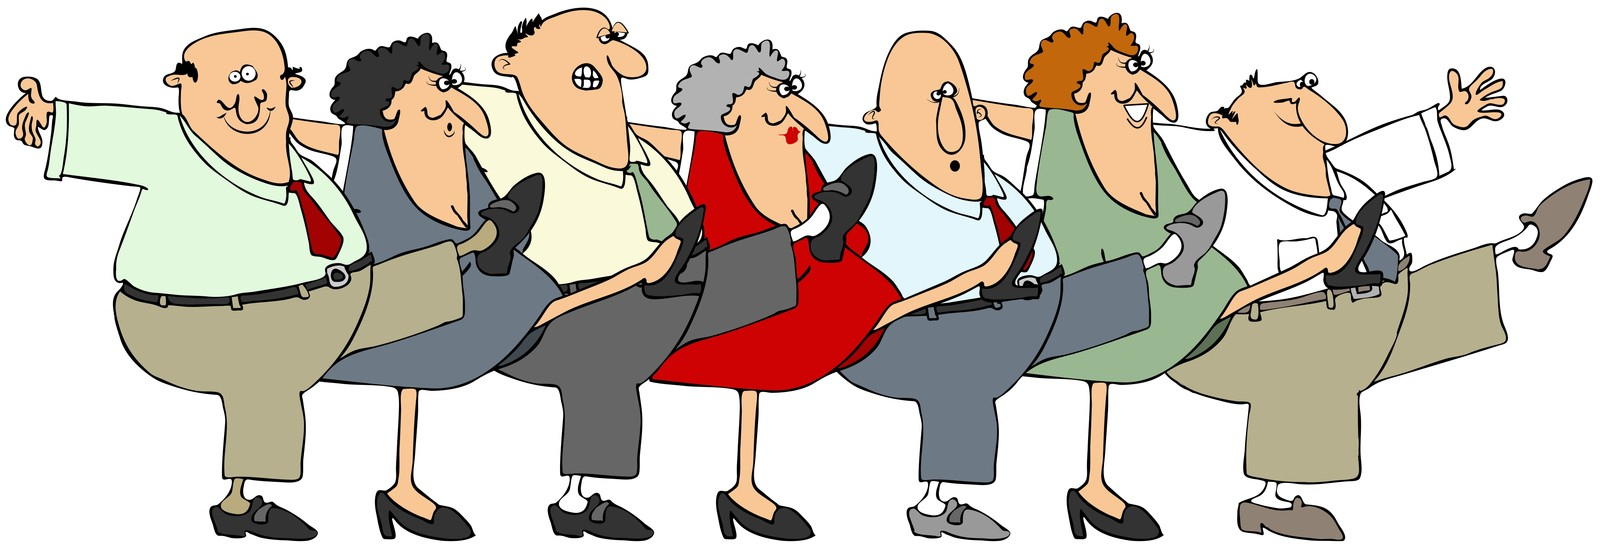 Healthy aging clipart.